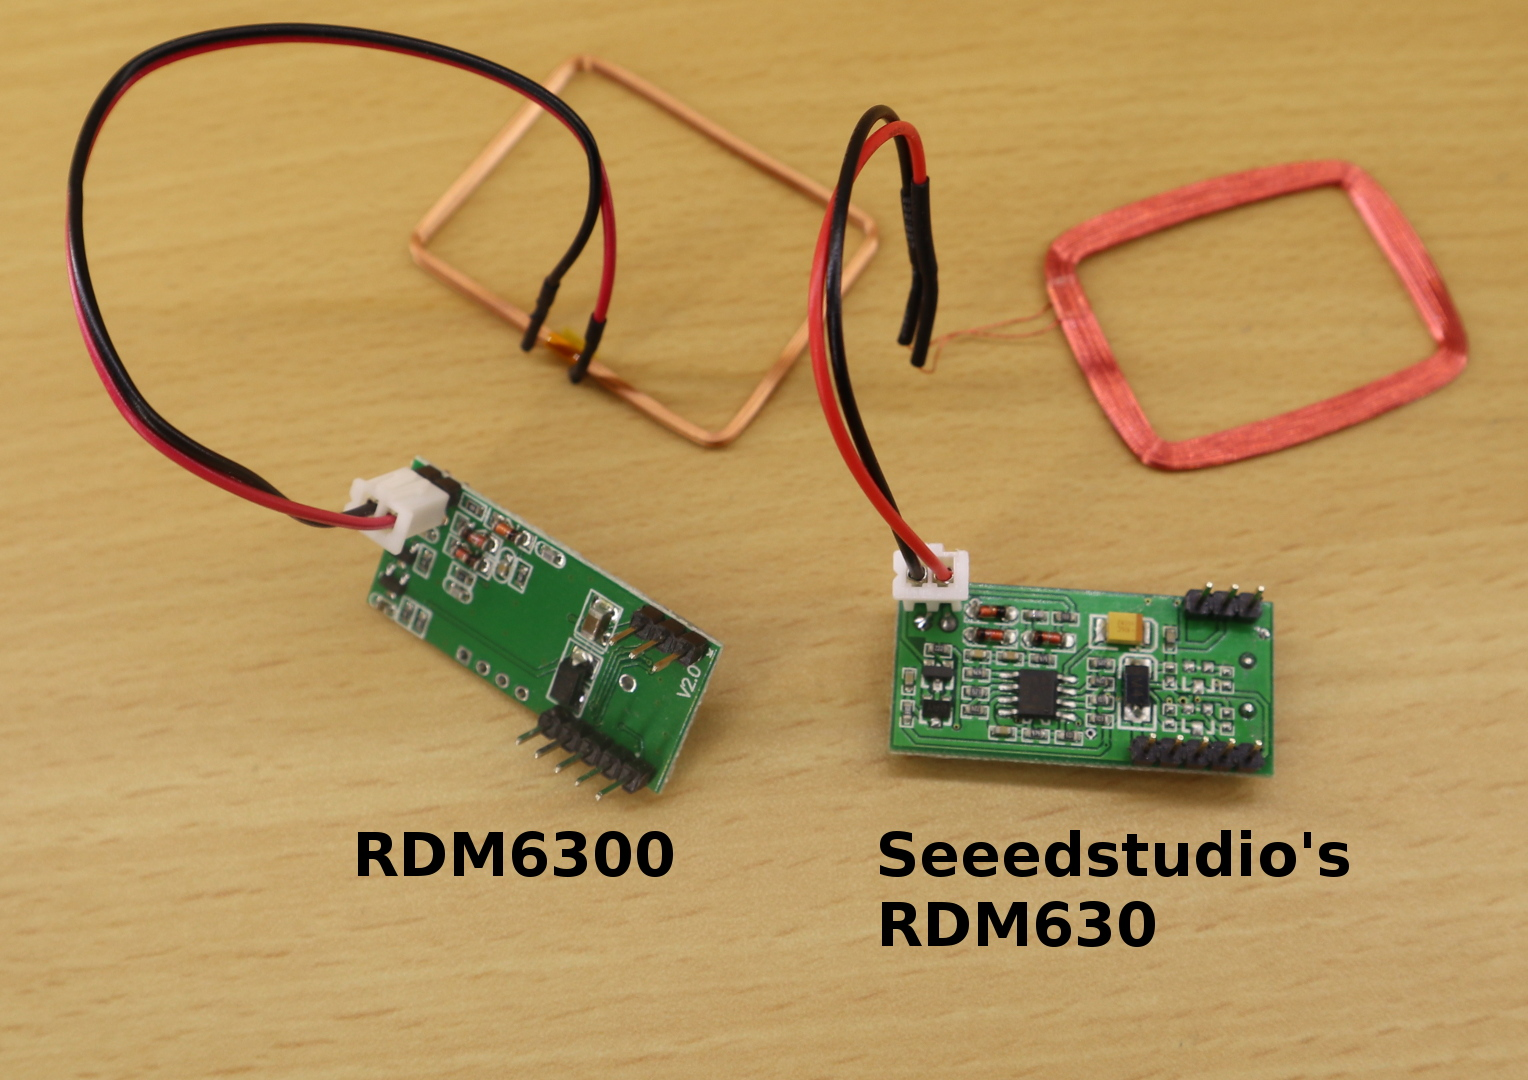 Arduino-Tutorial: How to use the RDM630/RDM6300 RFID reader